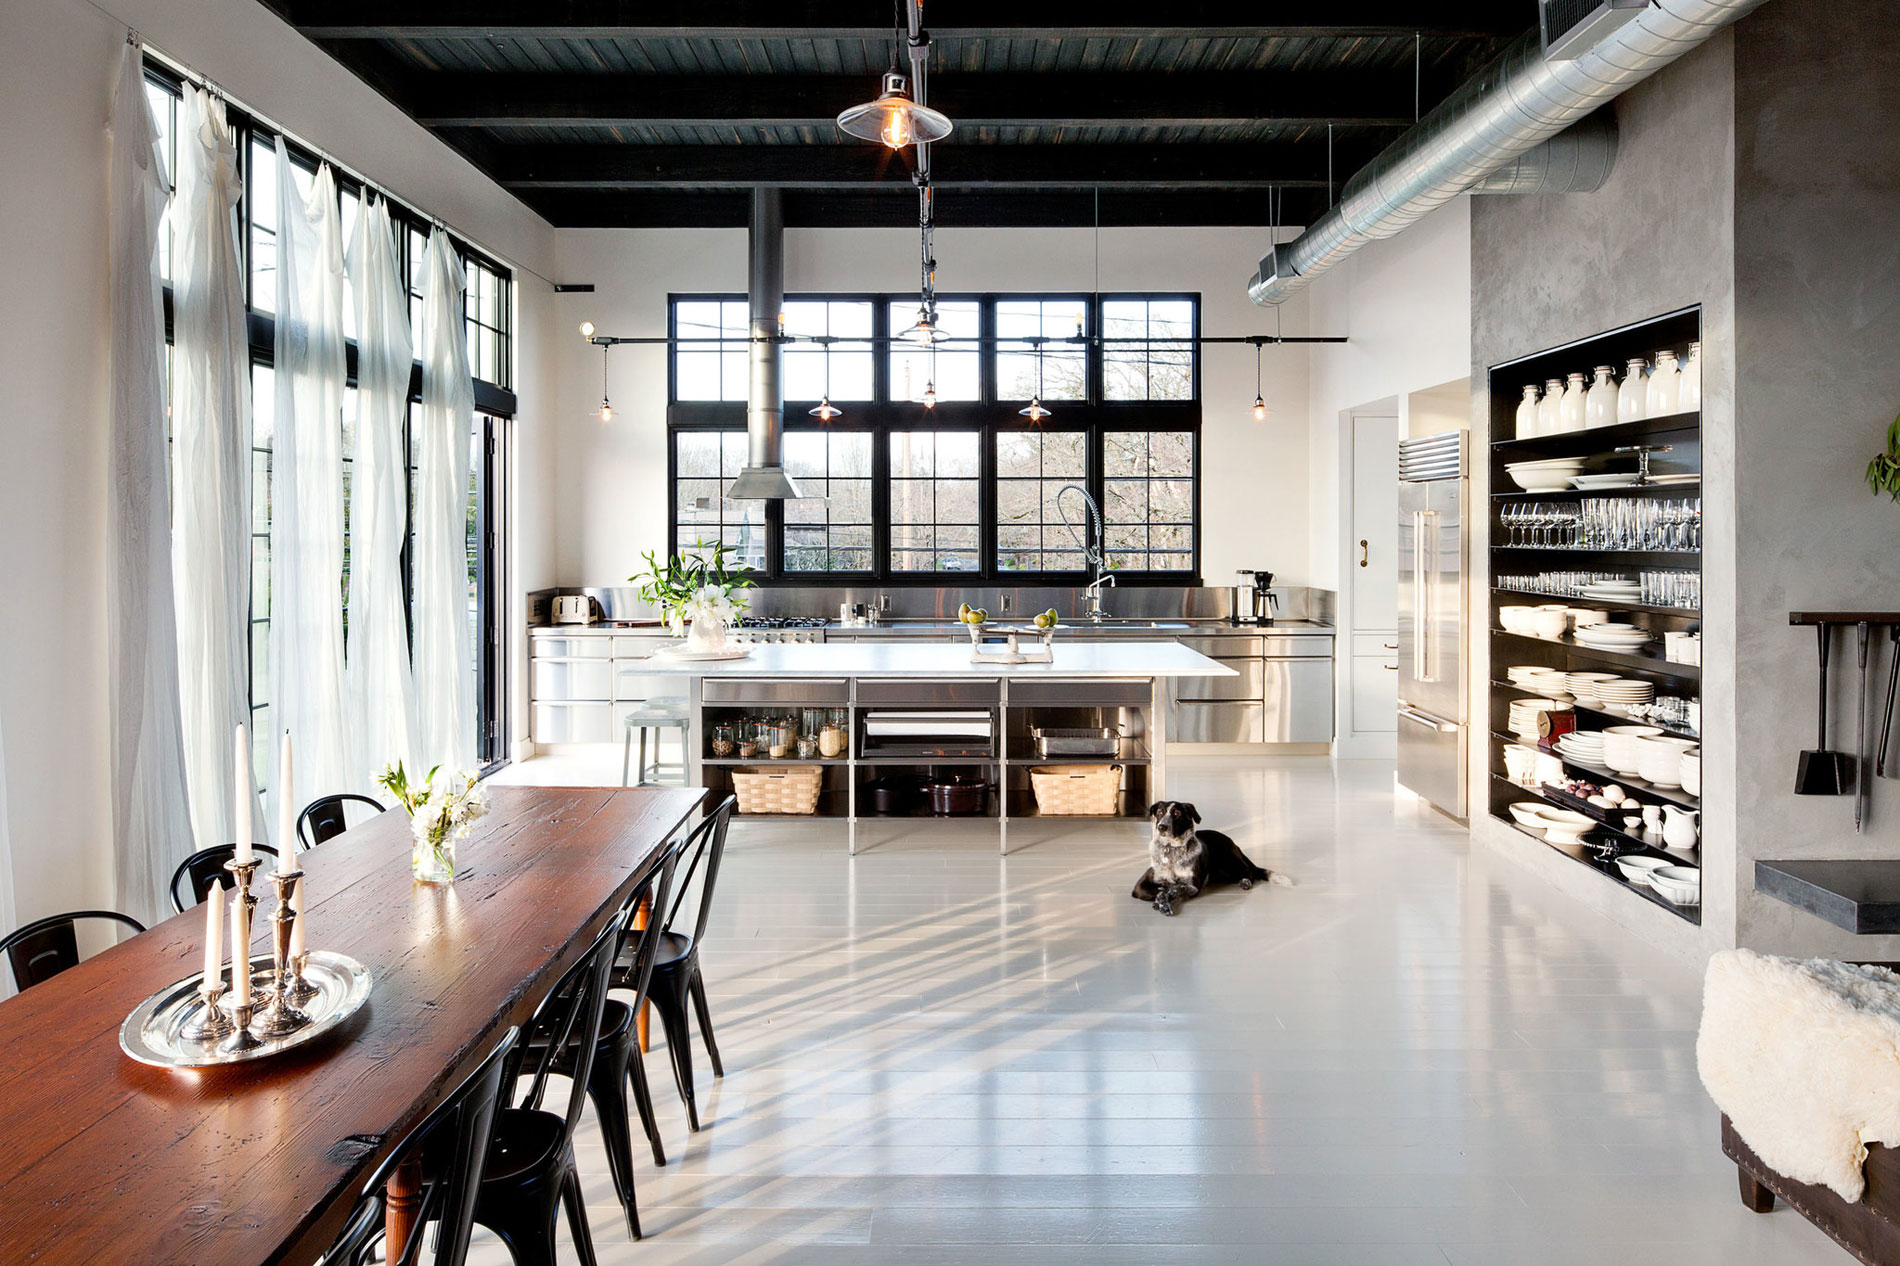 Se division street industrial home in portland by emerick architects caandesign architecture - Warehouse home designs ...